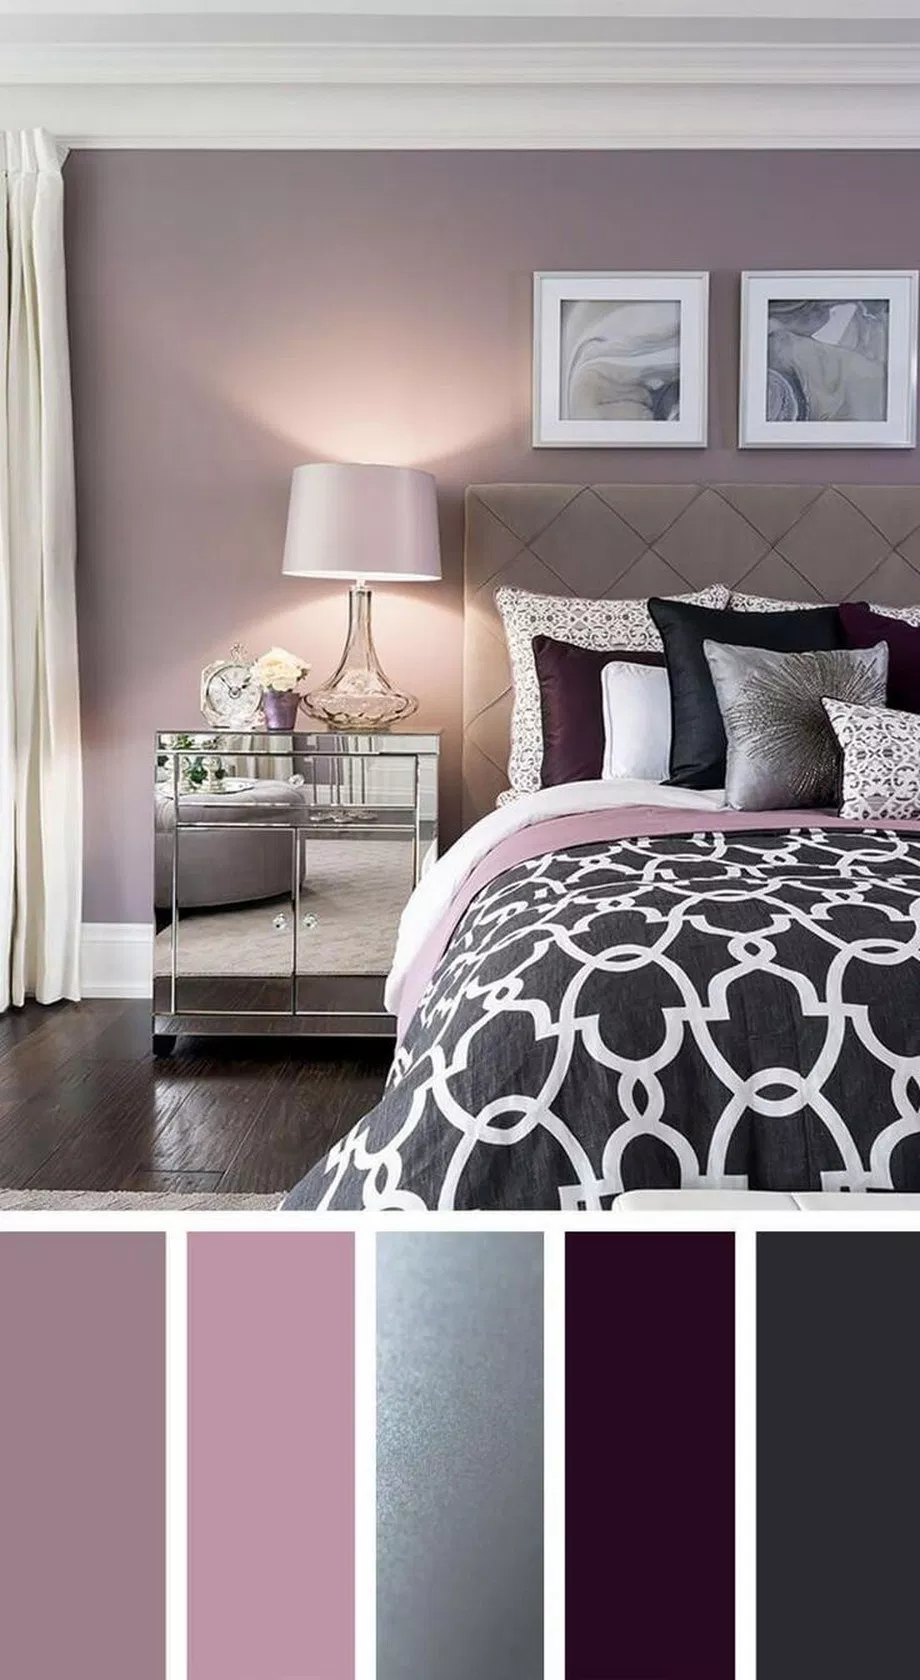 34 Romantic Bedroom Ideas For Couples Couplesbedroomideas Bedroomideas Bedroom Tendolla Beautiful Bedroom Colors Master Bedroom Colors Bedroom Wall Colors